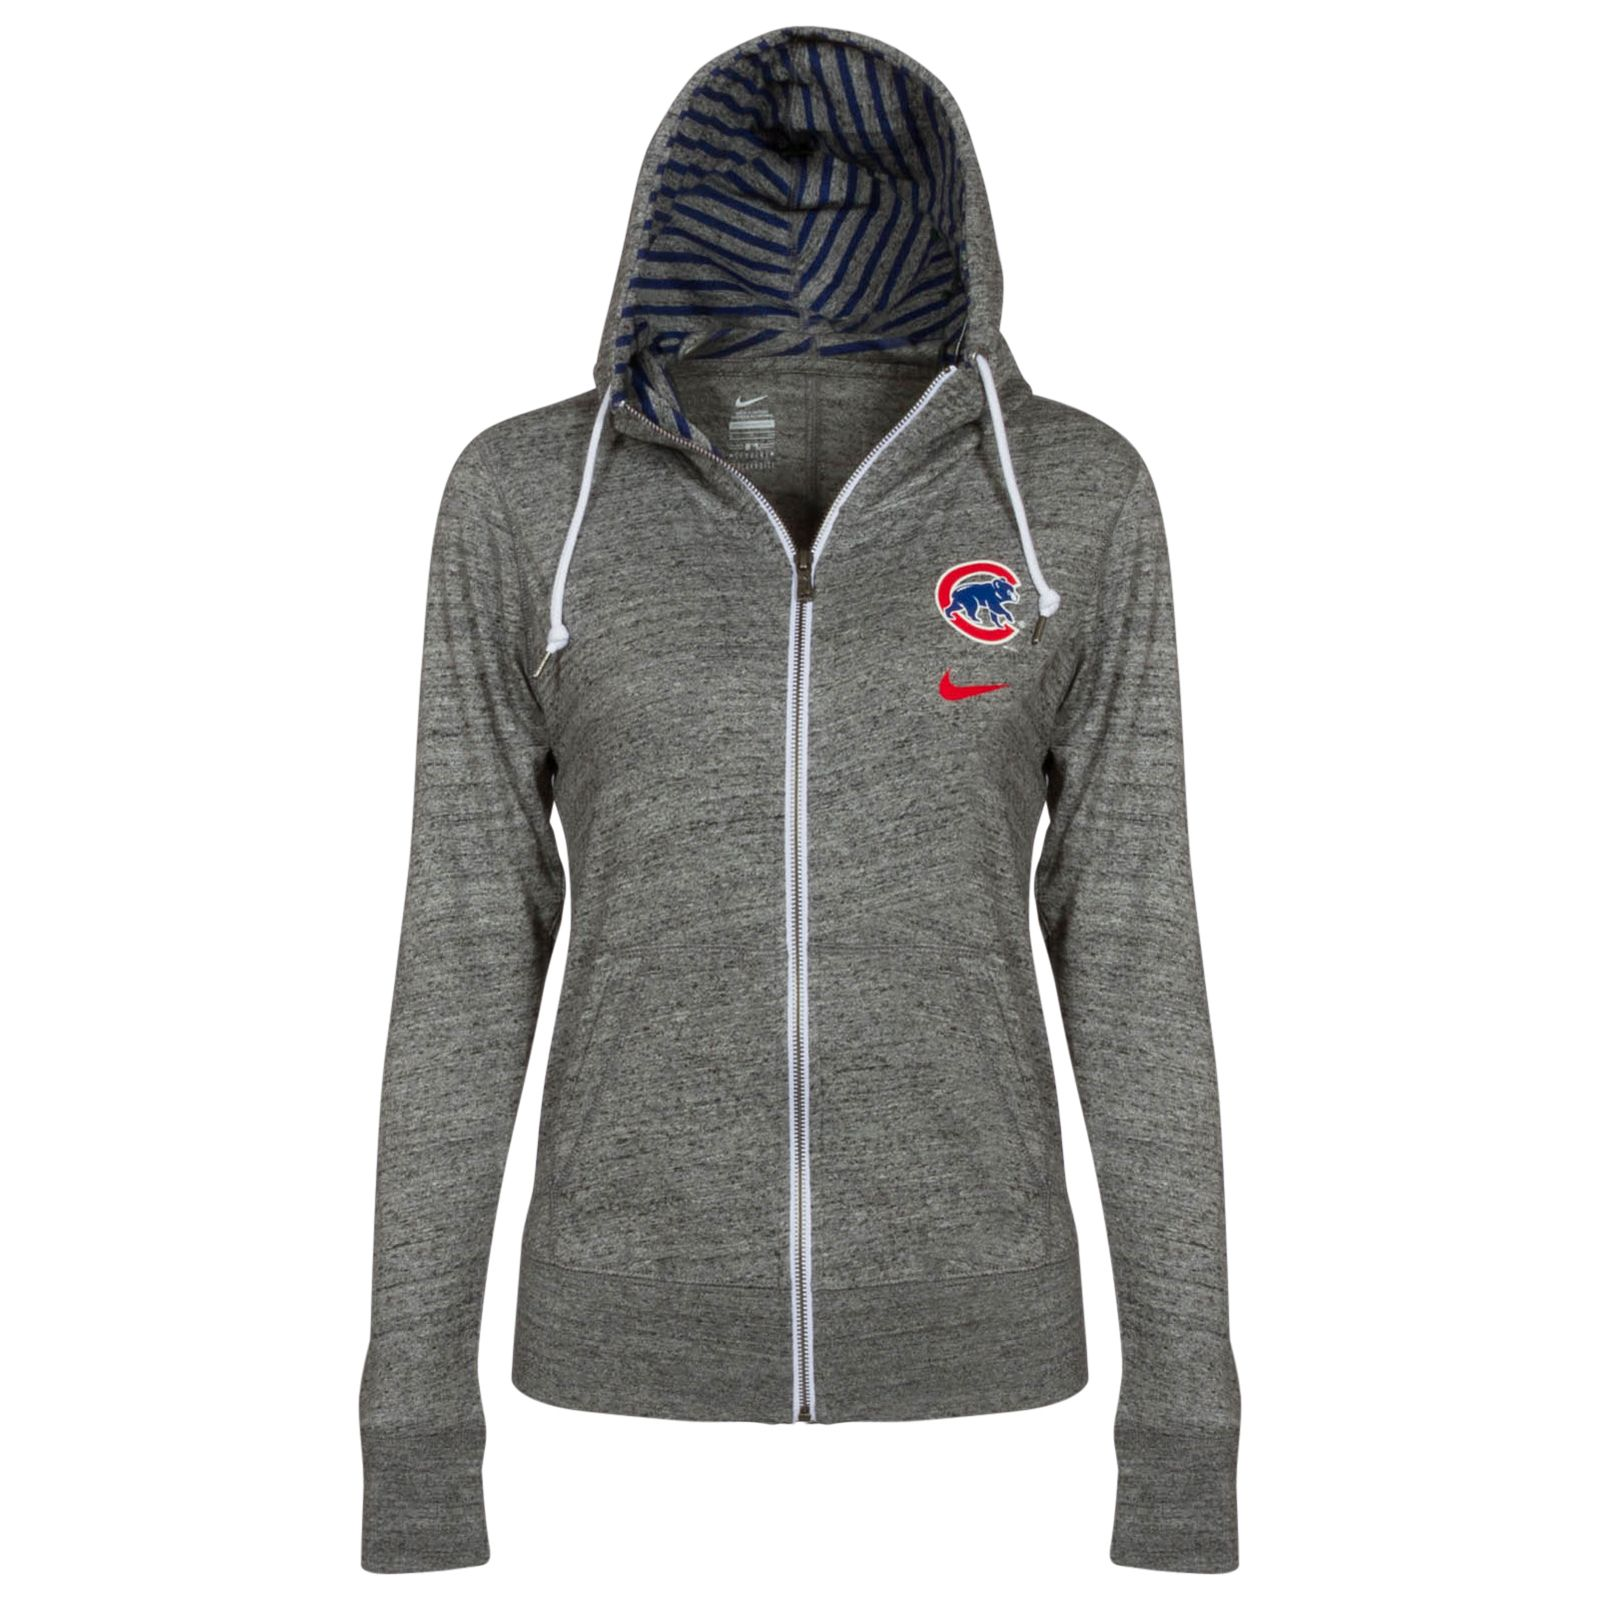 buy online 61744 7a369 Chicago Cubs Women's Dark Heather Grey Crawl Bear Full-Zip ...